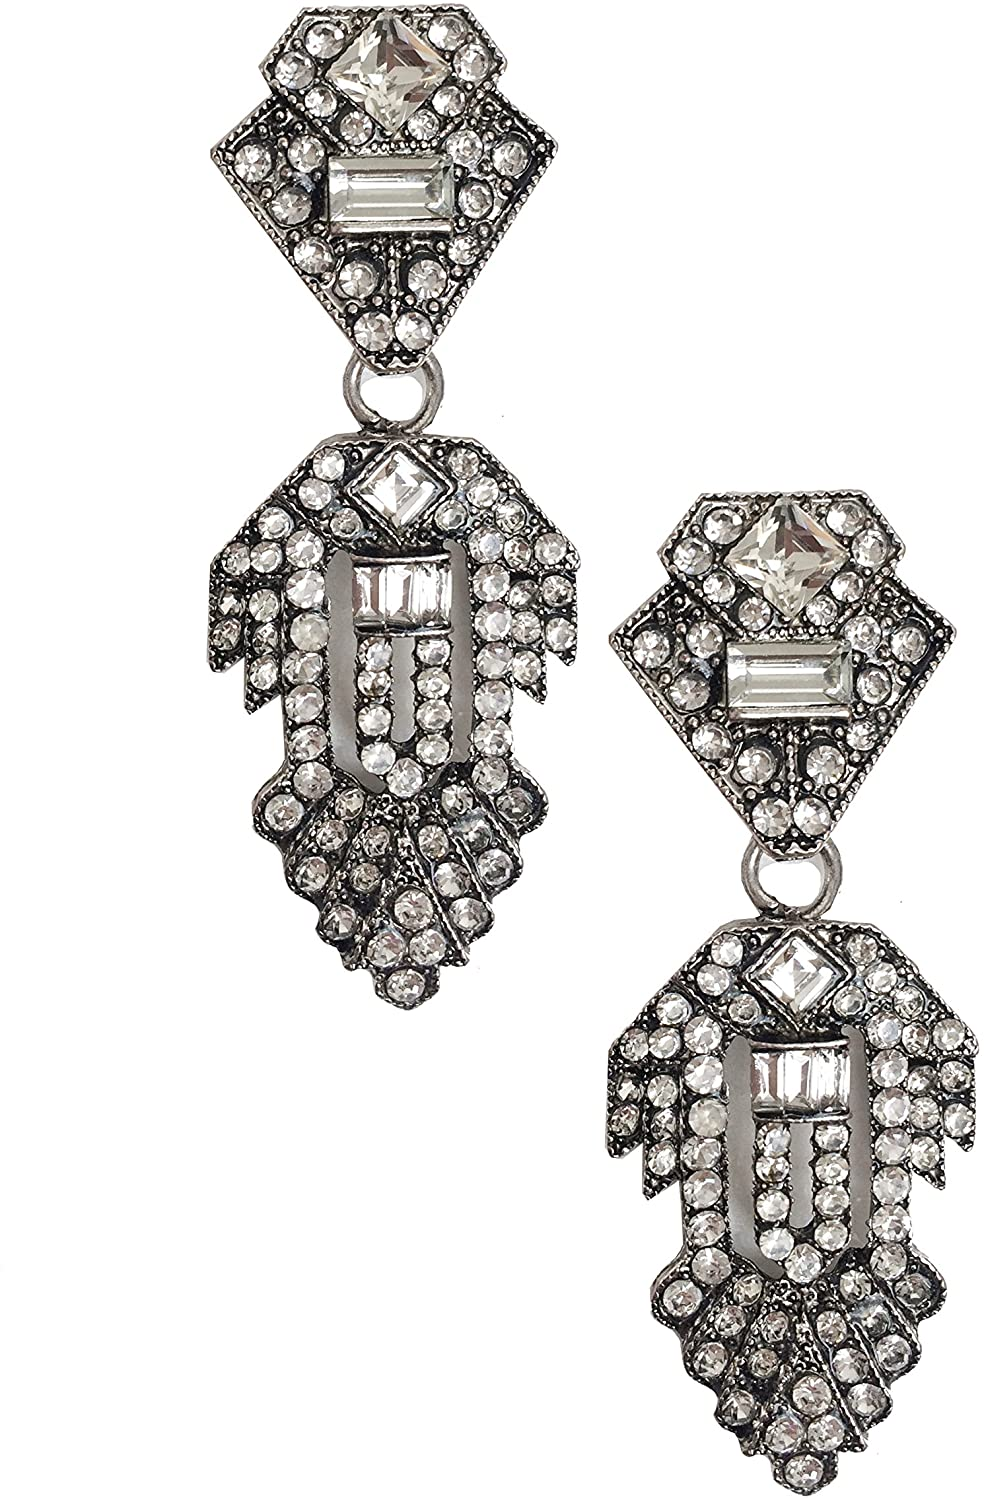 Large Classic Art Deco Flapper Style Statement Wedding Bridal Prom Formal Gatsby Party Rhinestone Earrings